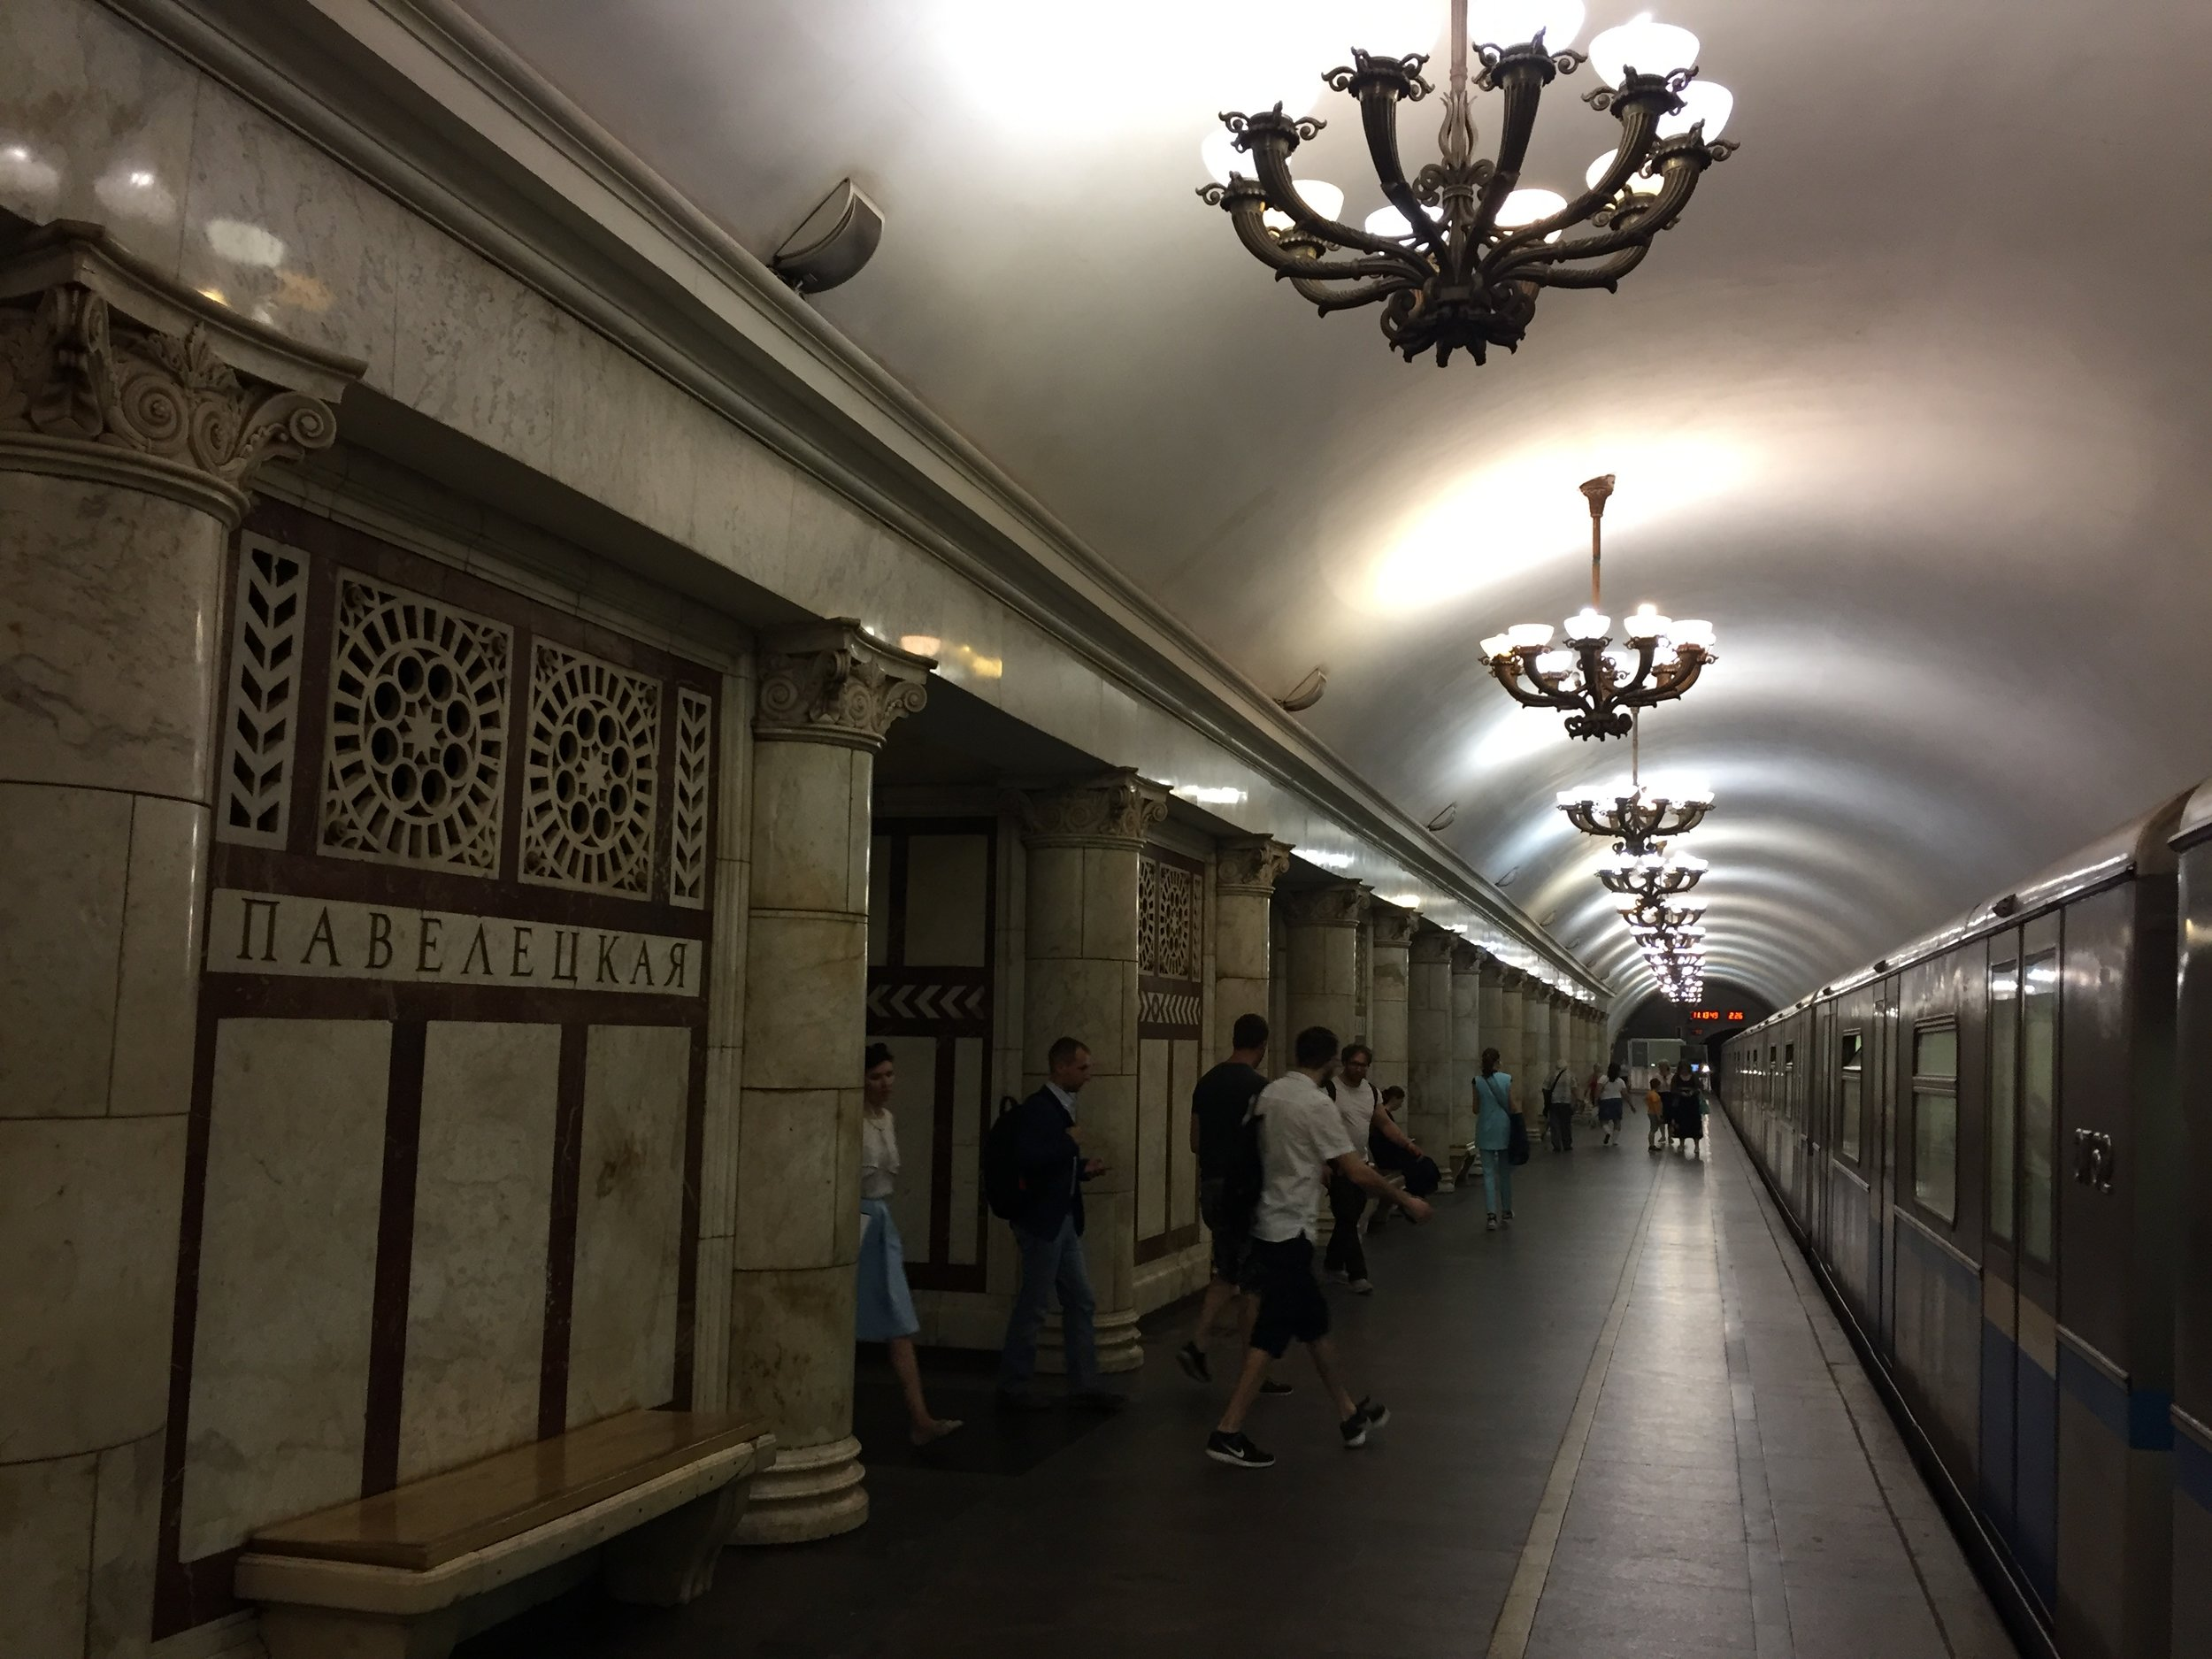 The magnificent Moscow Metro, Paveletskaya station.